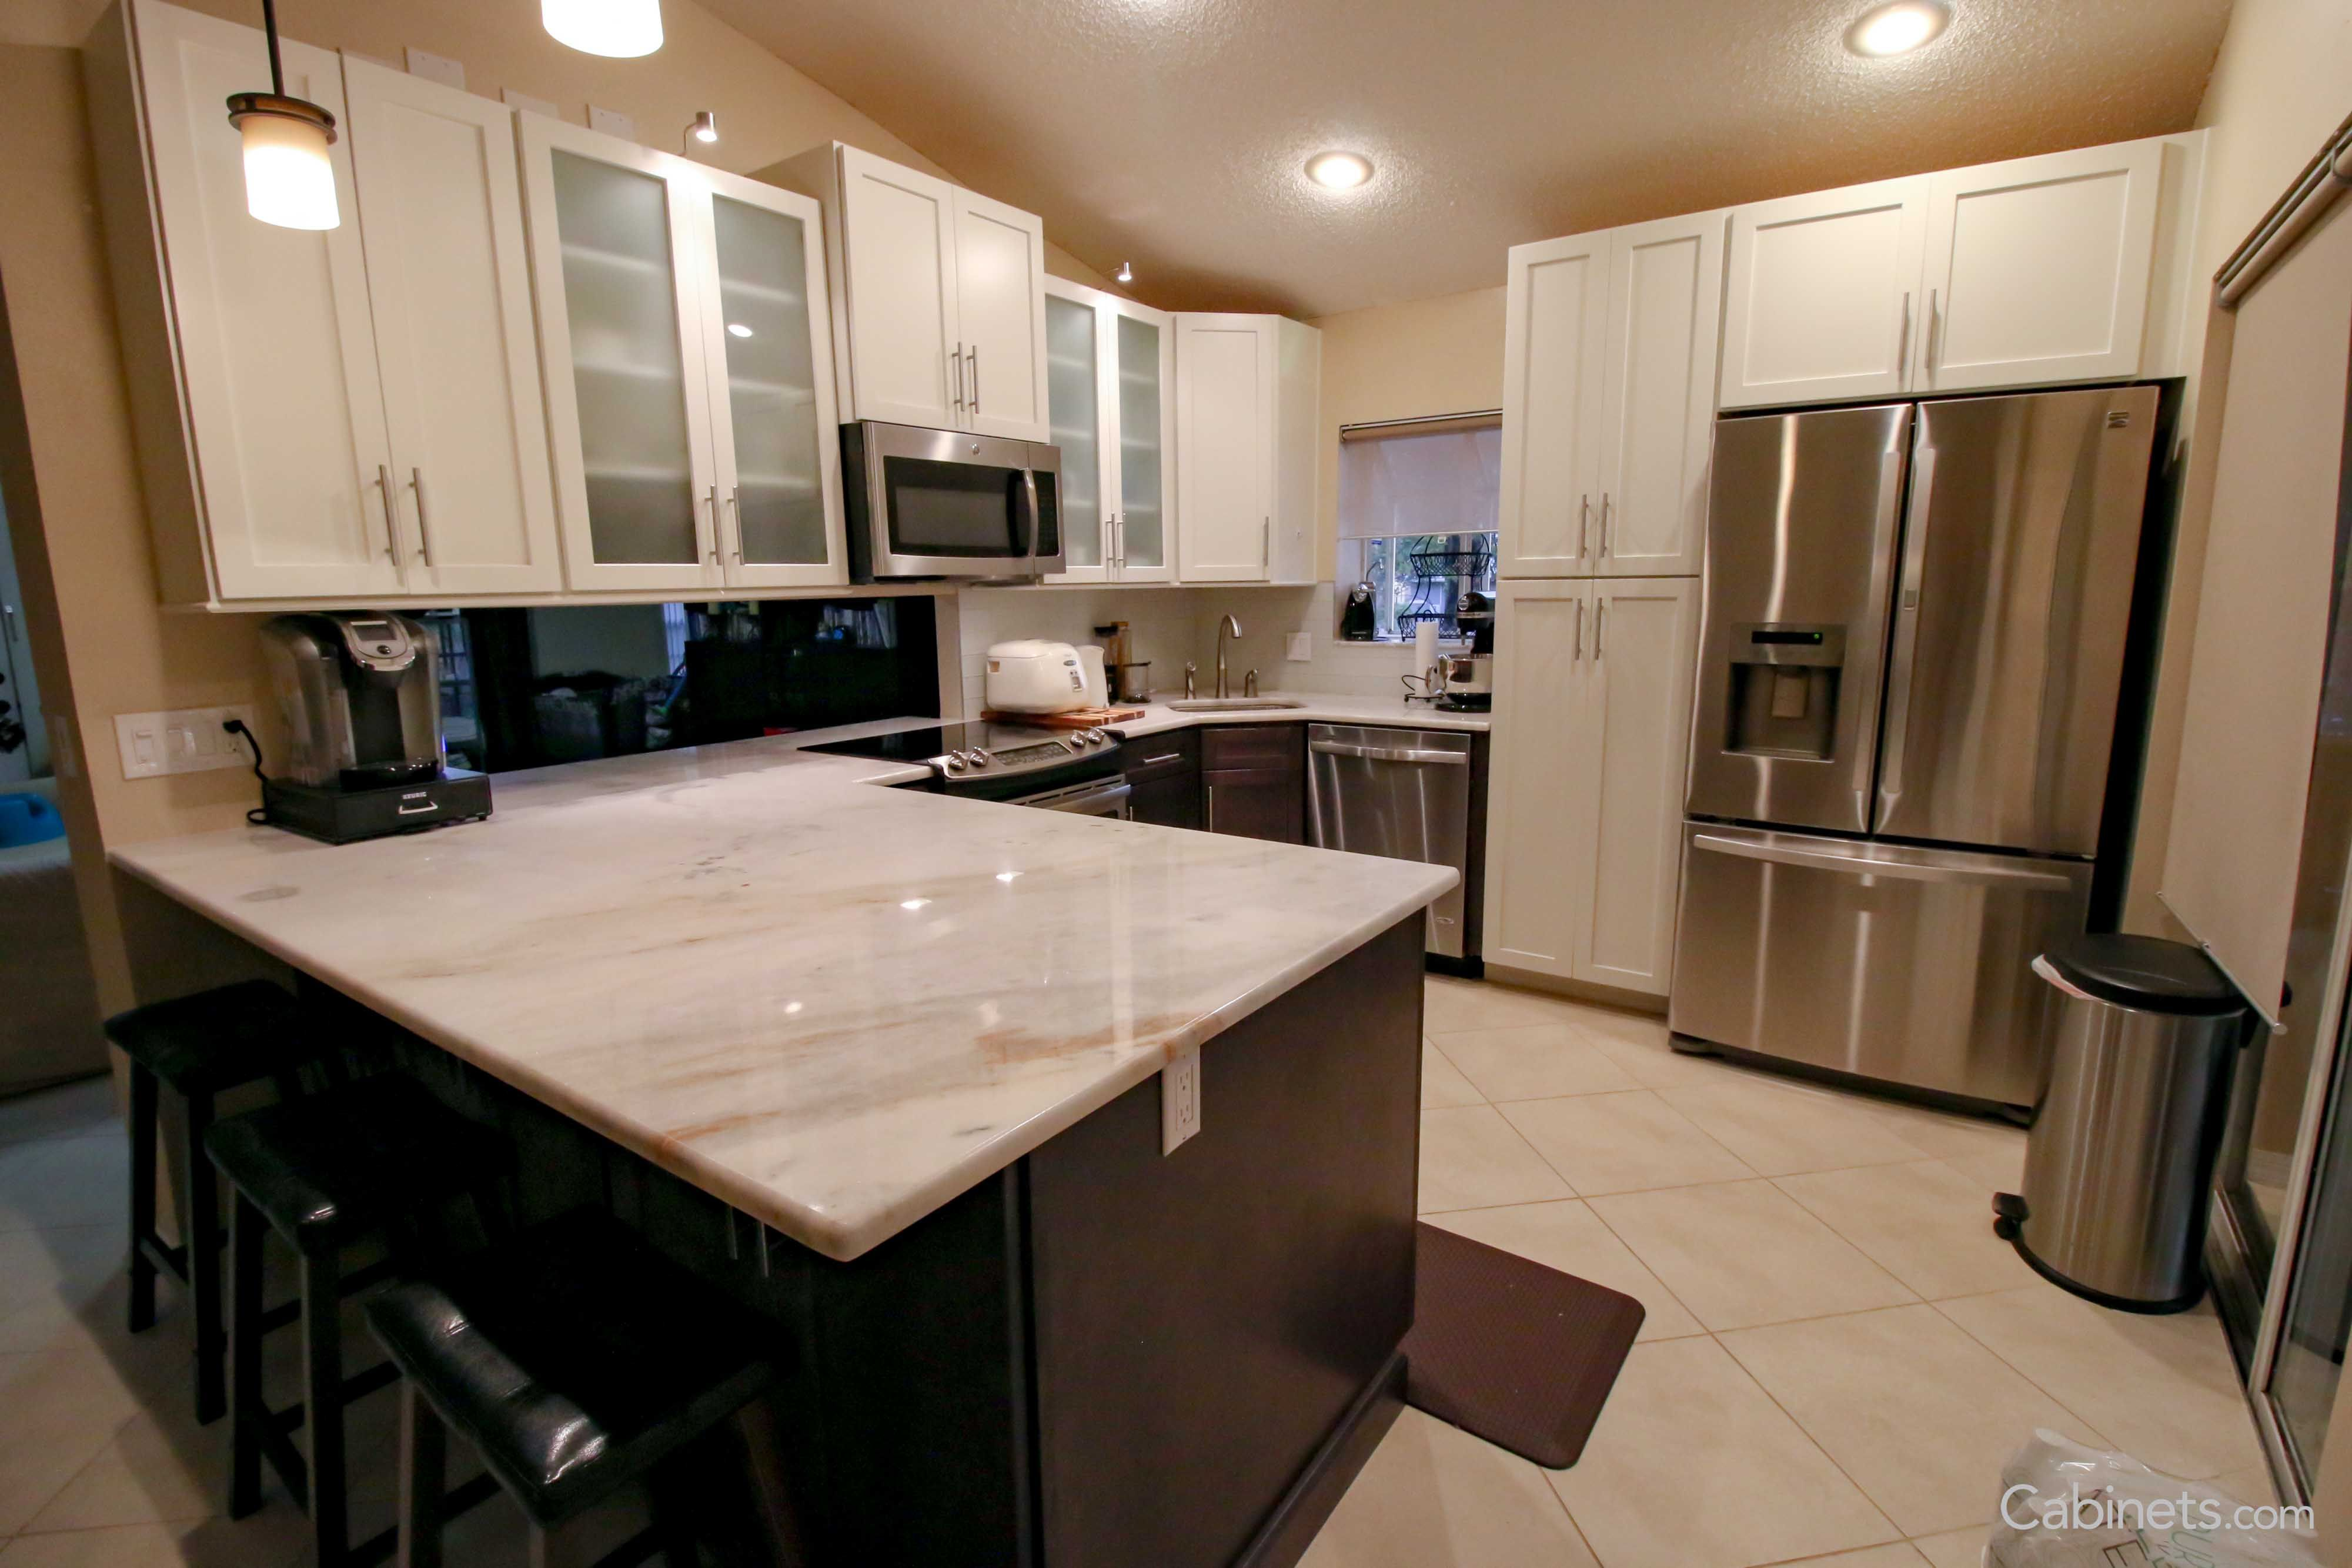 Modern Two Toned Kitchen With Peninsula And Corner Sink Cabinets Com Kitchen Peninsula Corner Sink Two Tone Kitchen